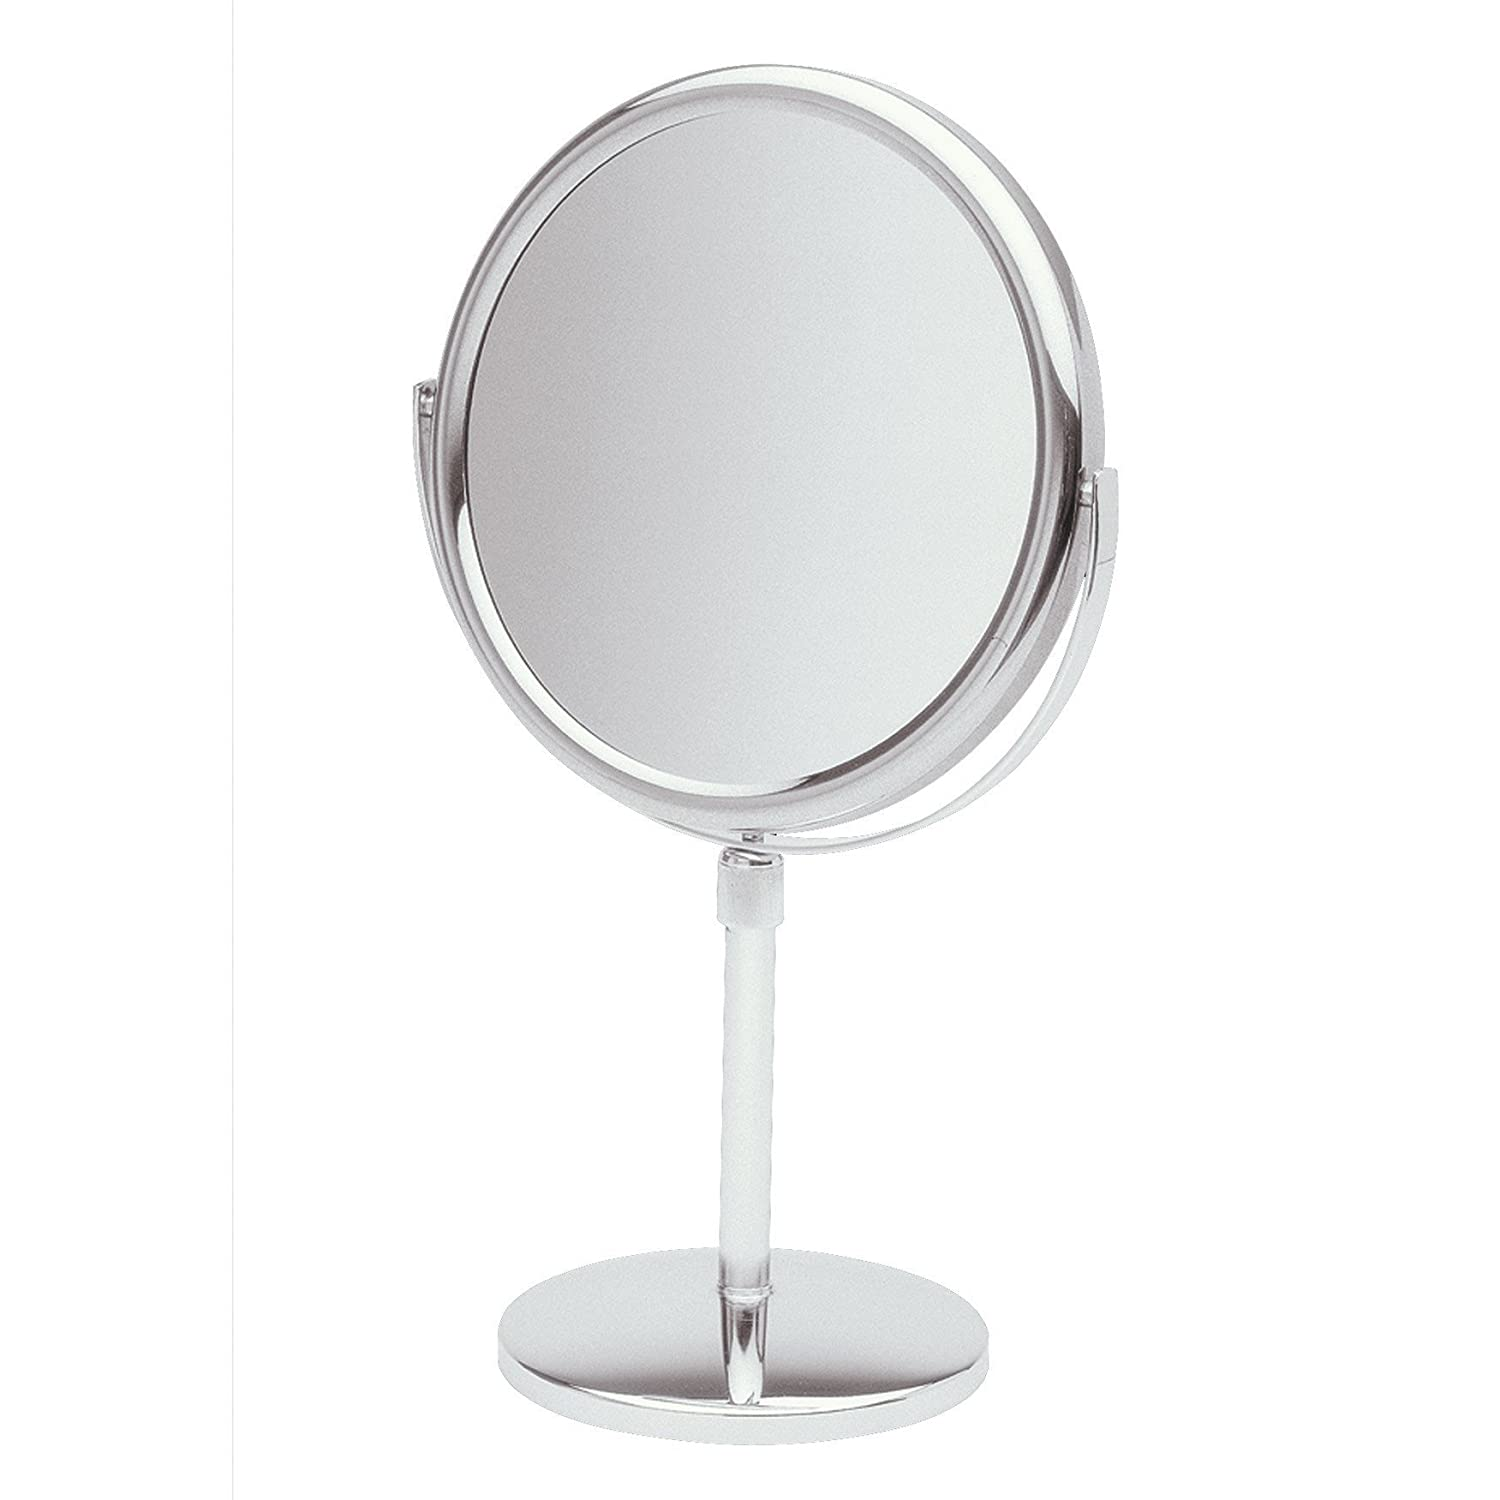 Jerdon JP4045C 9-Inch Vanity Mirror with 5x Magnification, Chrome Finish